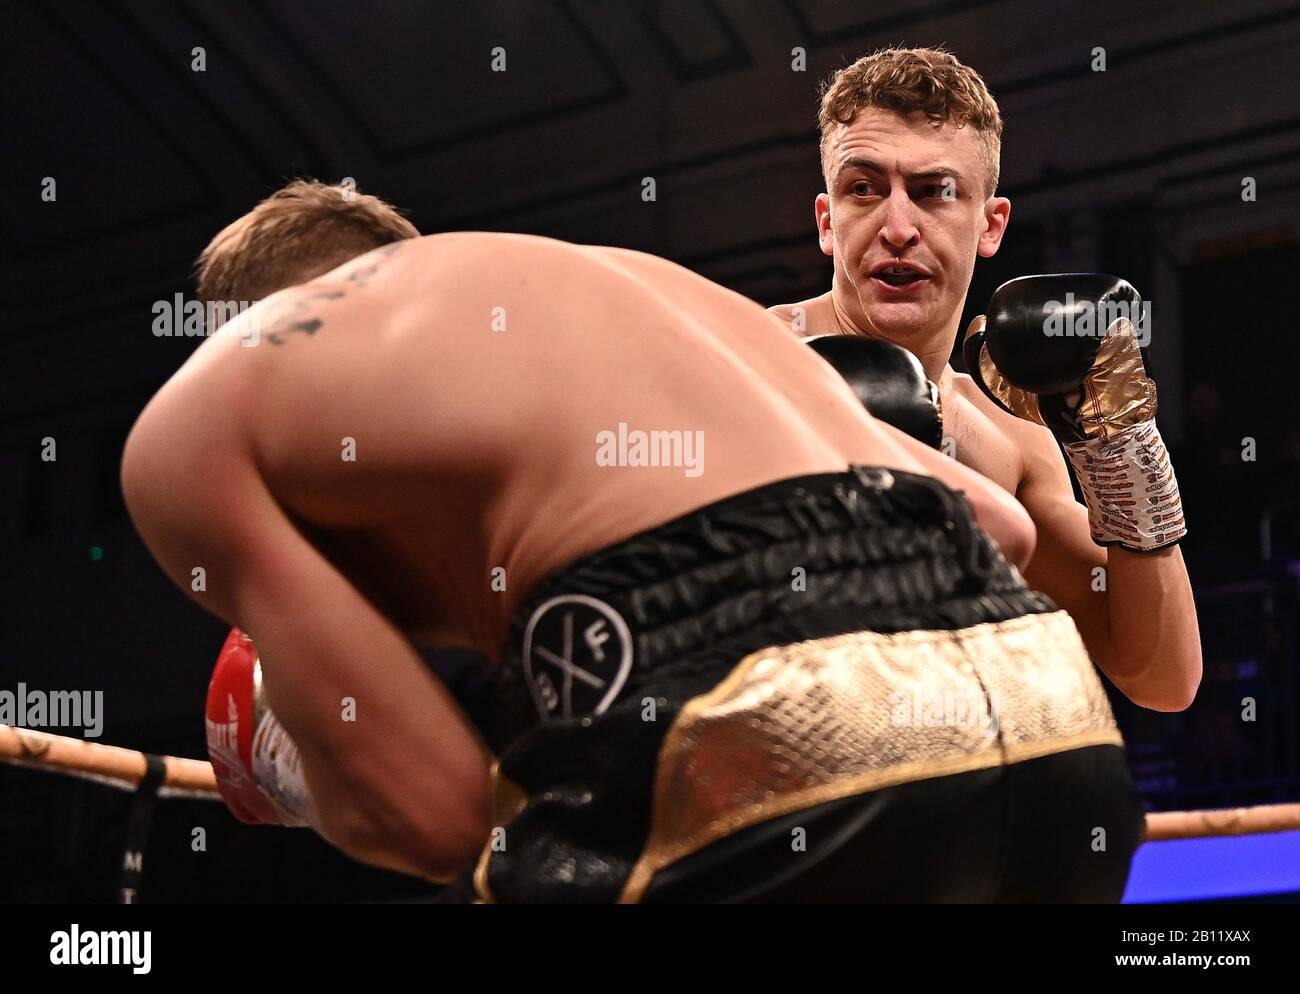 Bethnal Green, United Kingdom. 21st Feb, 2020. Elliot Whale. Preliminary bout 2. MTK Golden contract boxing semi finals. York Hall. Bethnal Green. London. UK. Credit Garry Bowden/Sport in Pictures/Alamy Live News. Credit: Sport In Pictures/Alamy Live News Stock Photo